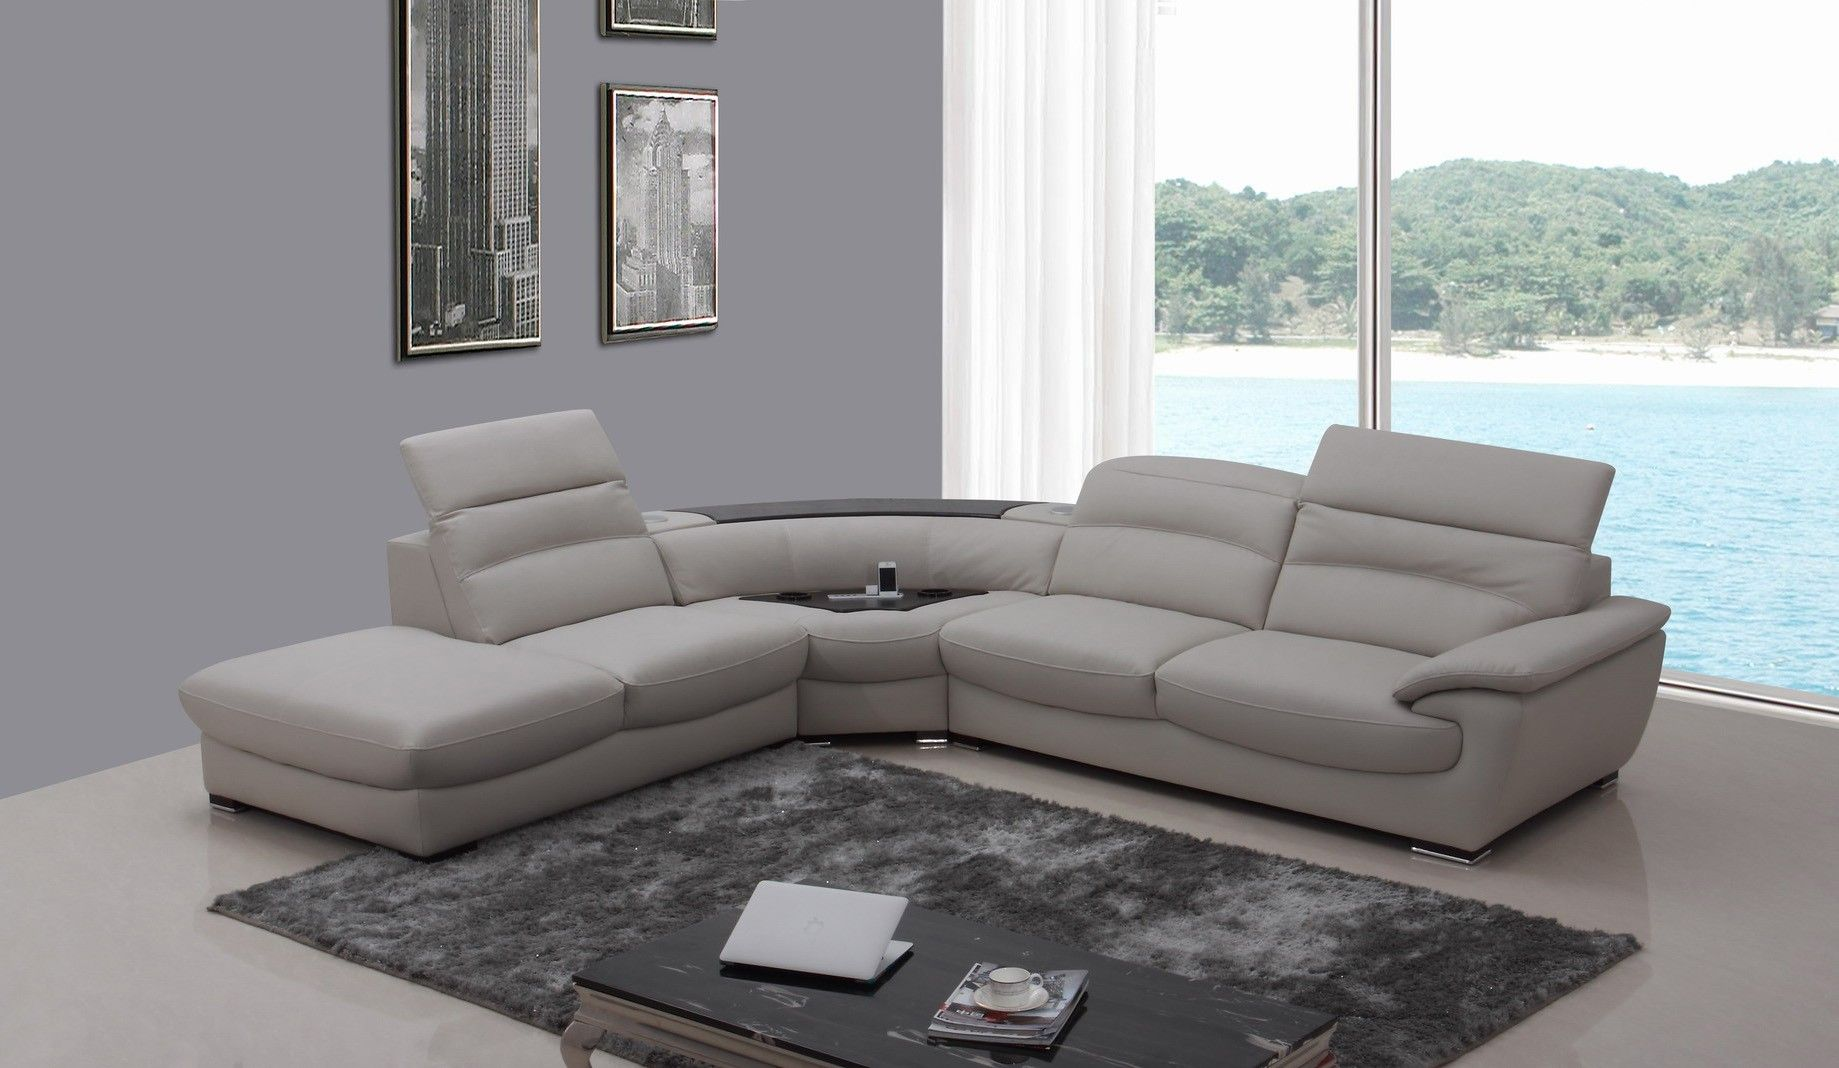 cool Luxury Grey Leather Sectional Sofa 39 For Your Home Decor ...